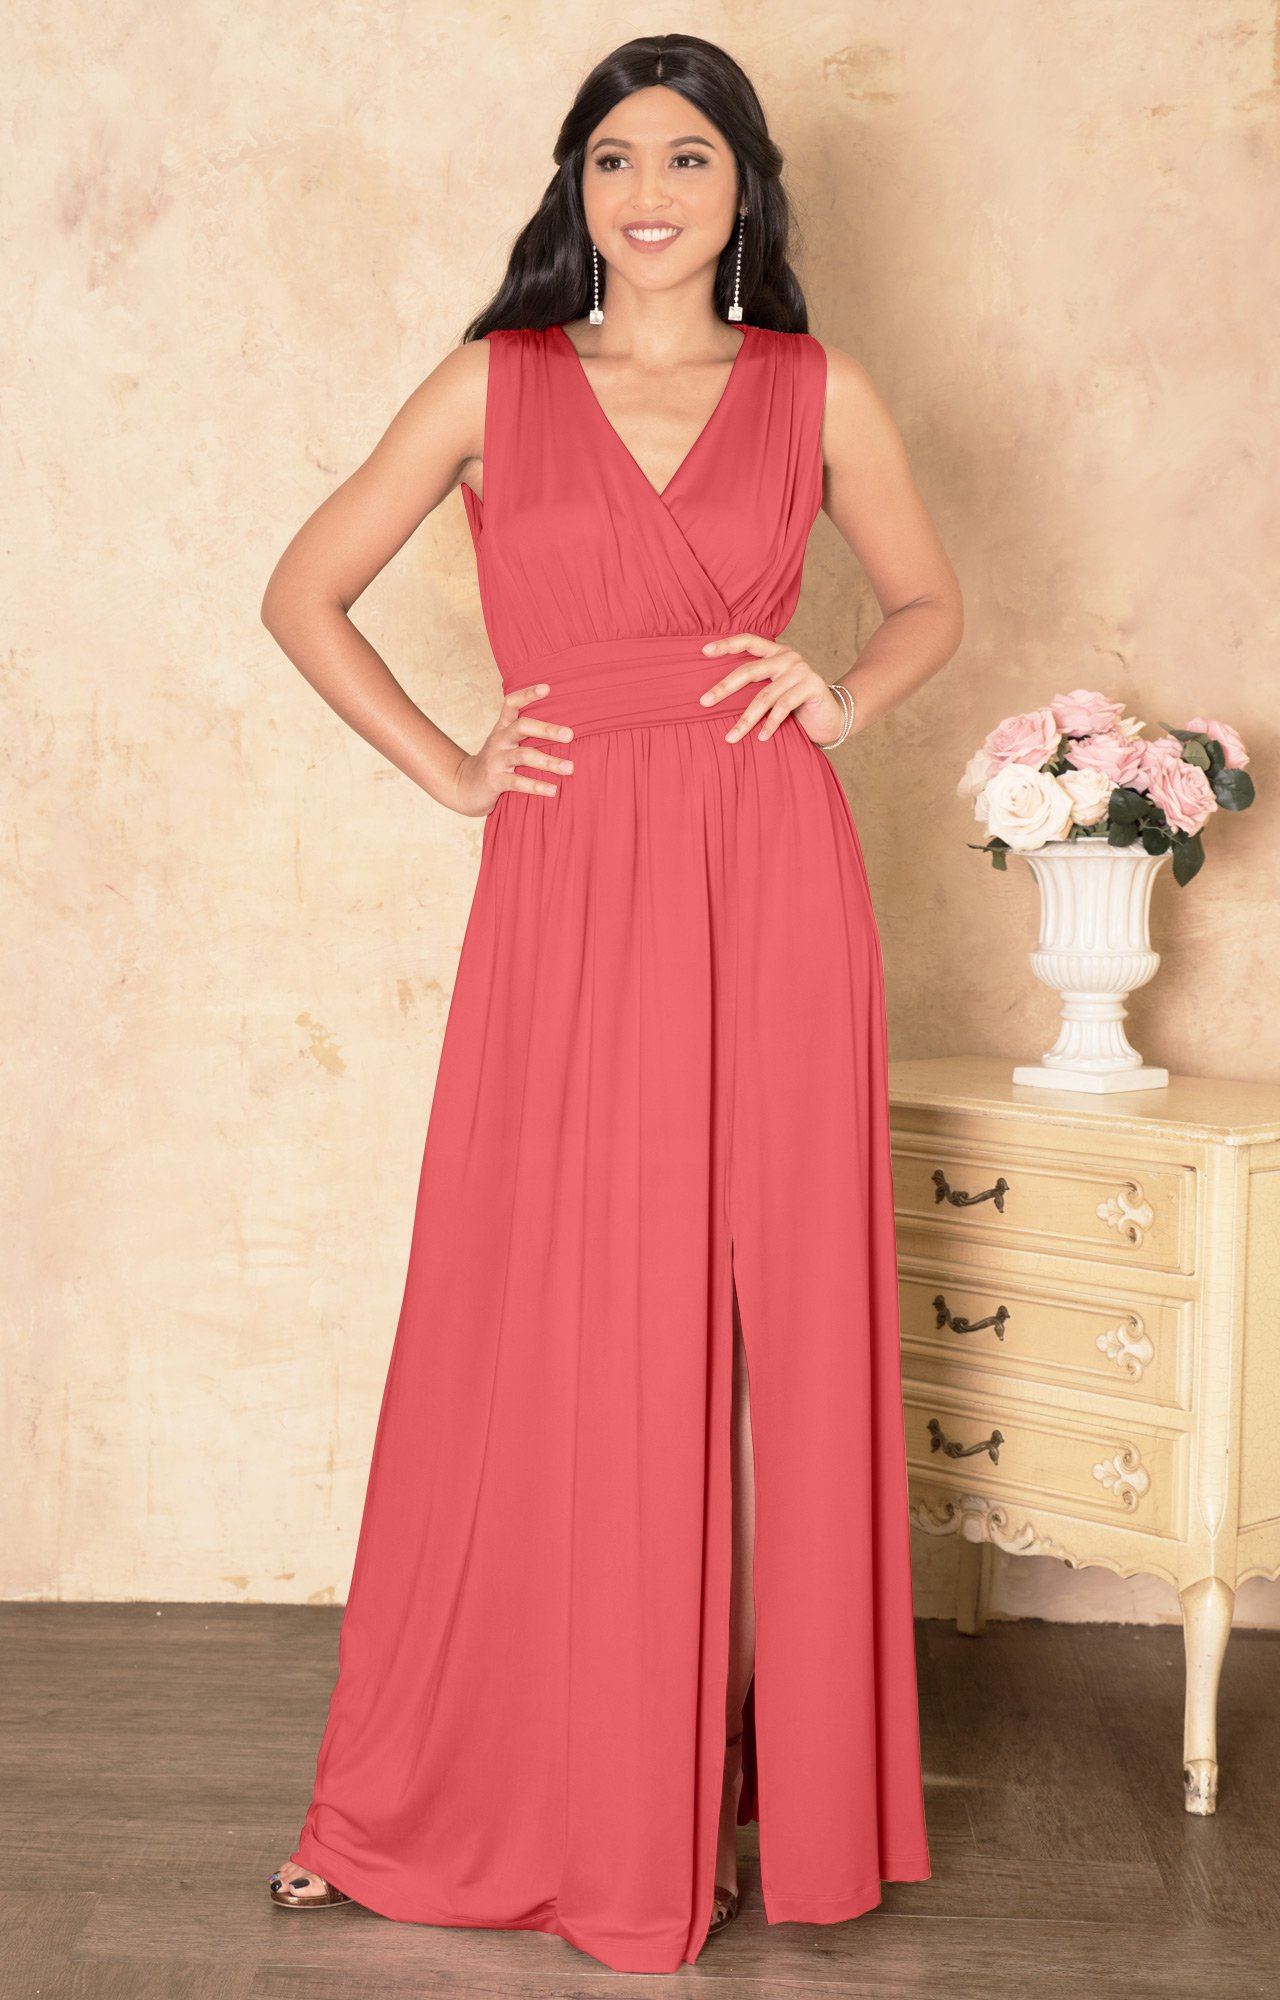 62cce47085 KOH KOH Petite Womens Long Bridesmaid Wedding Guest Cocktail Party Sexy  Sleeveless Summer V-Neck Evening Slit Day Full Floor Length Gown Gowns Maxi  ...